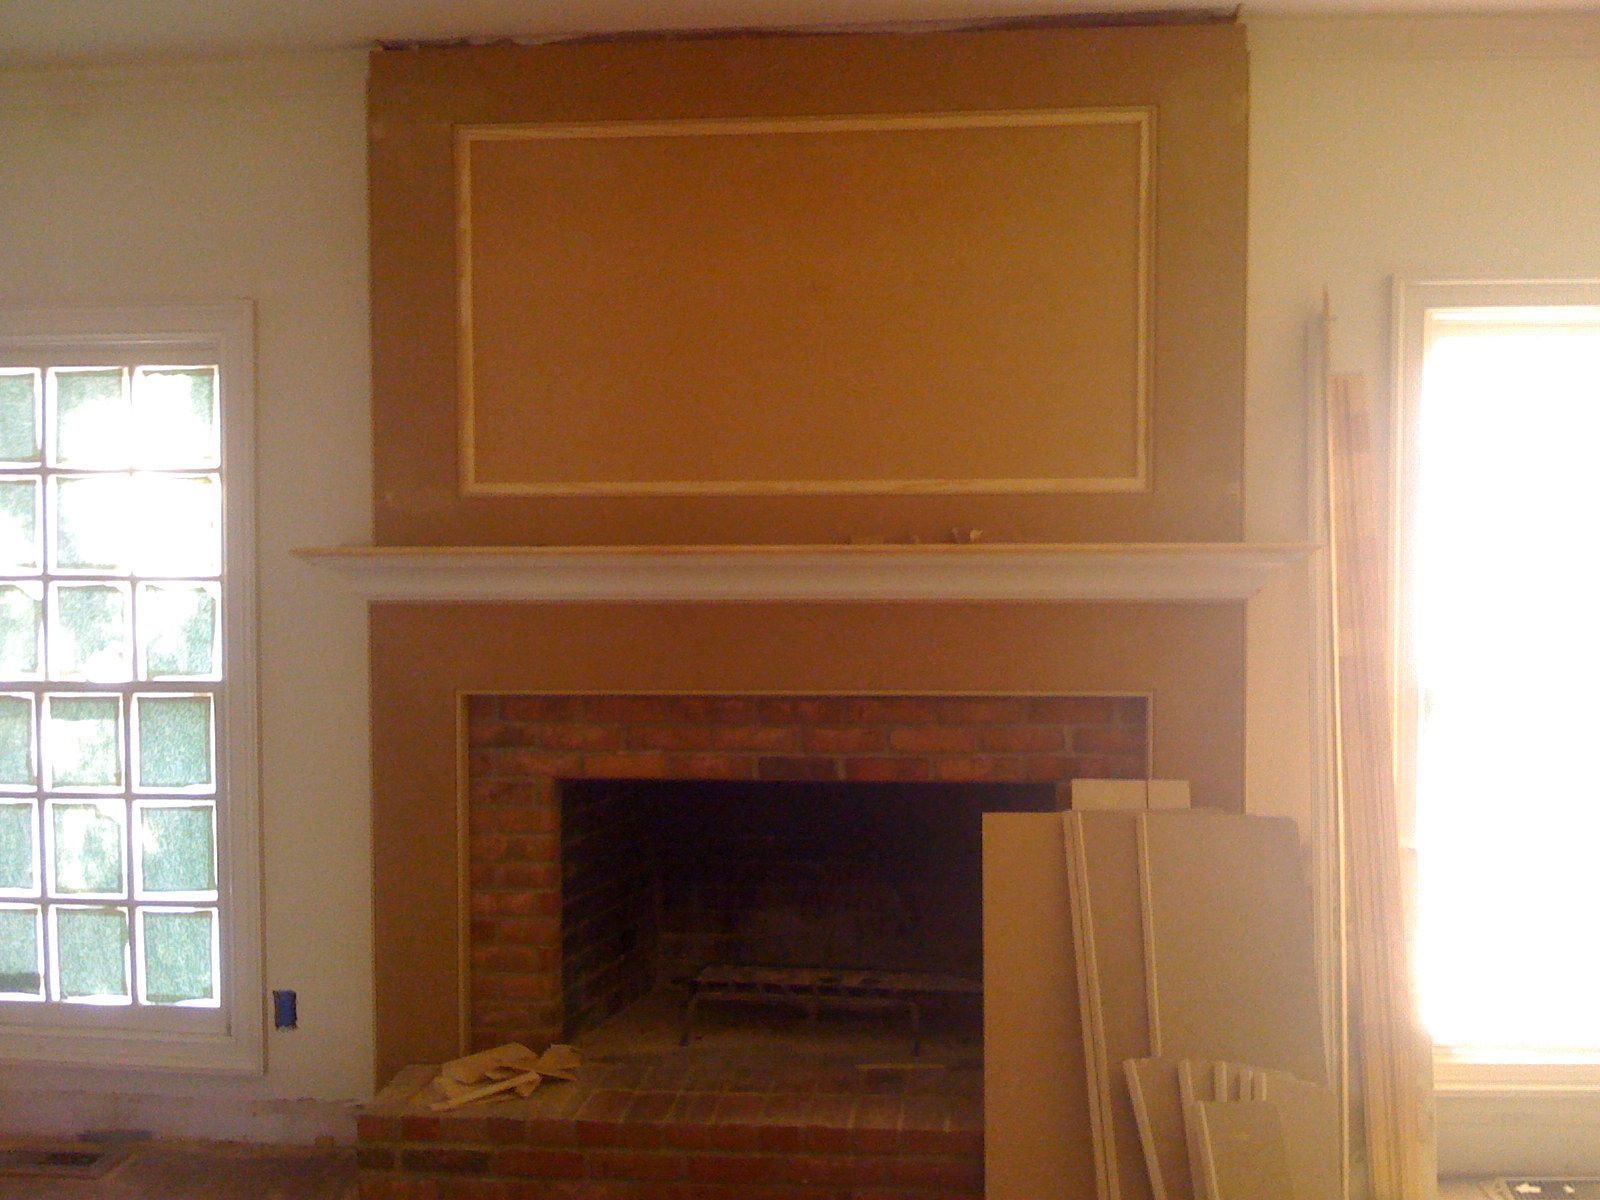 Brick Fireplace Remodel Ideas Cover The 80s Brick Fireplace With Mdf And A Mantel Updated